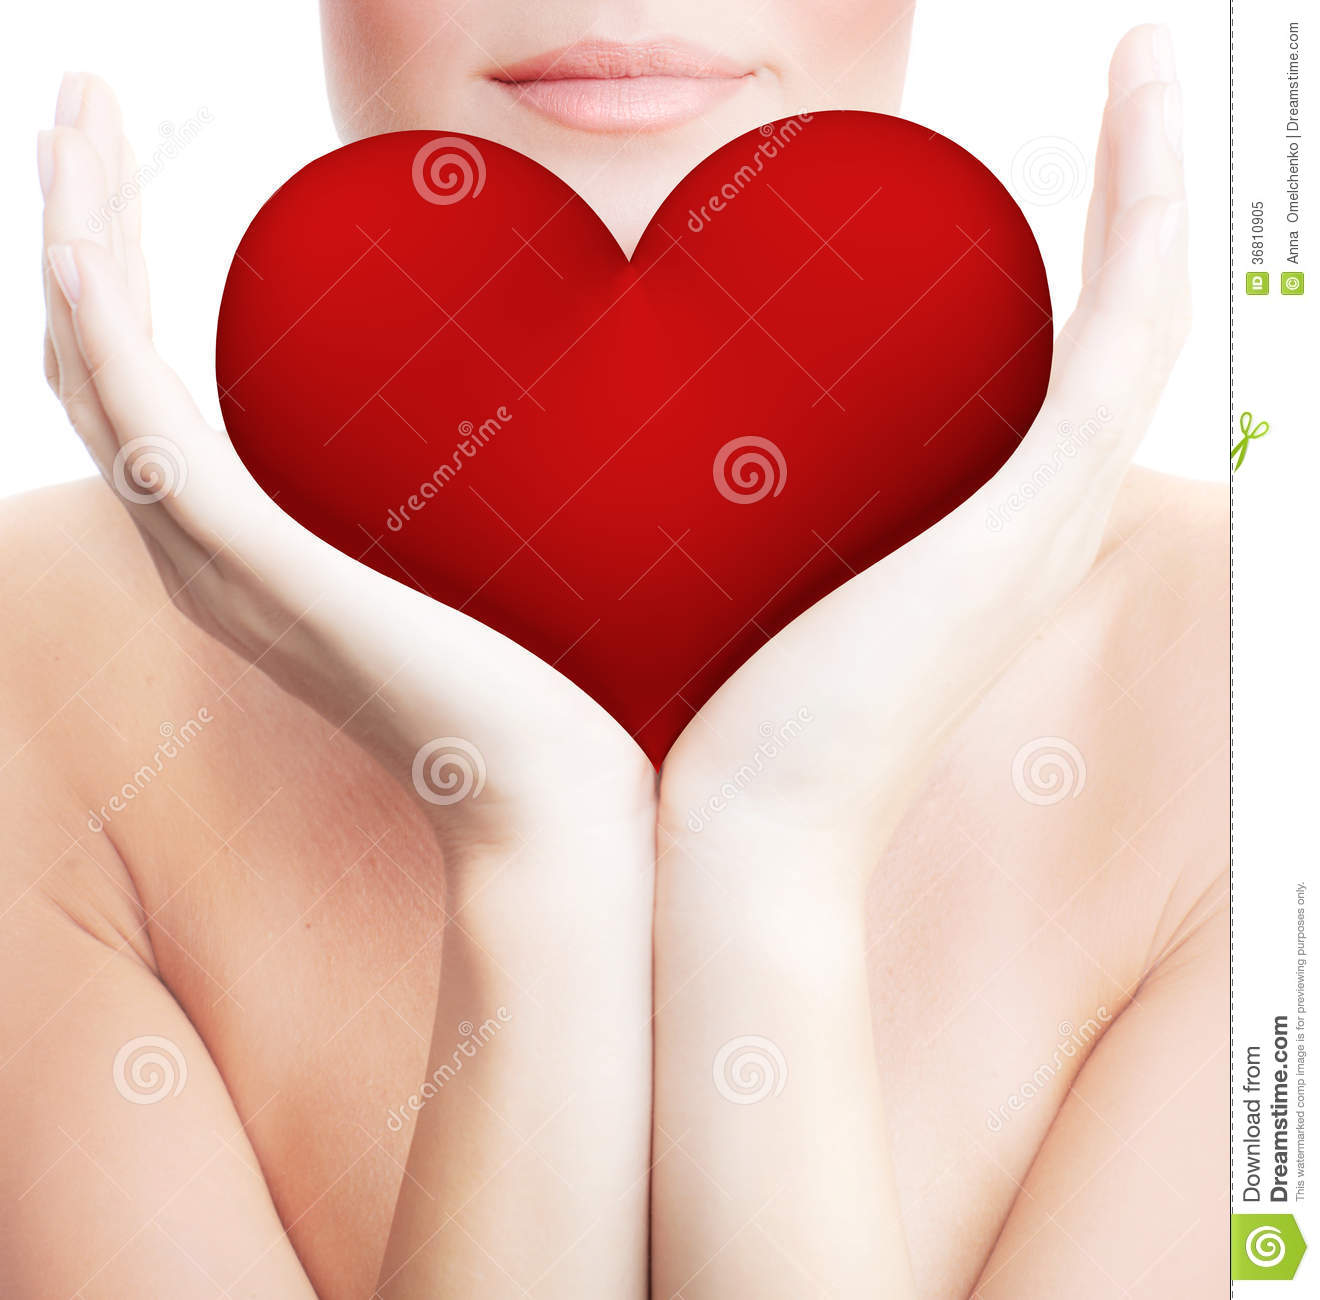 Beautiful Woman Holding Big Red Heart Stock Image - Image of hand ...